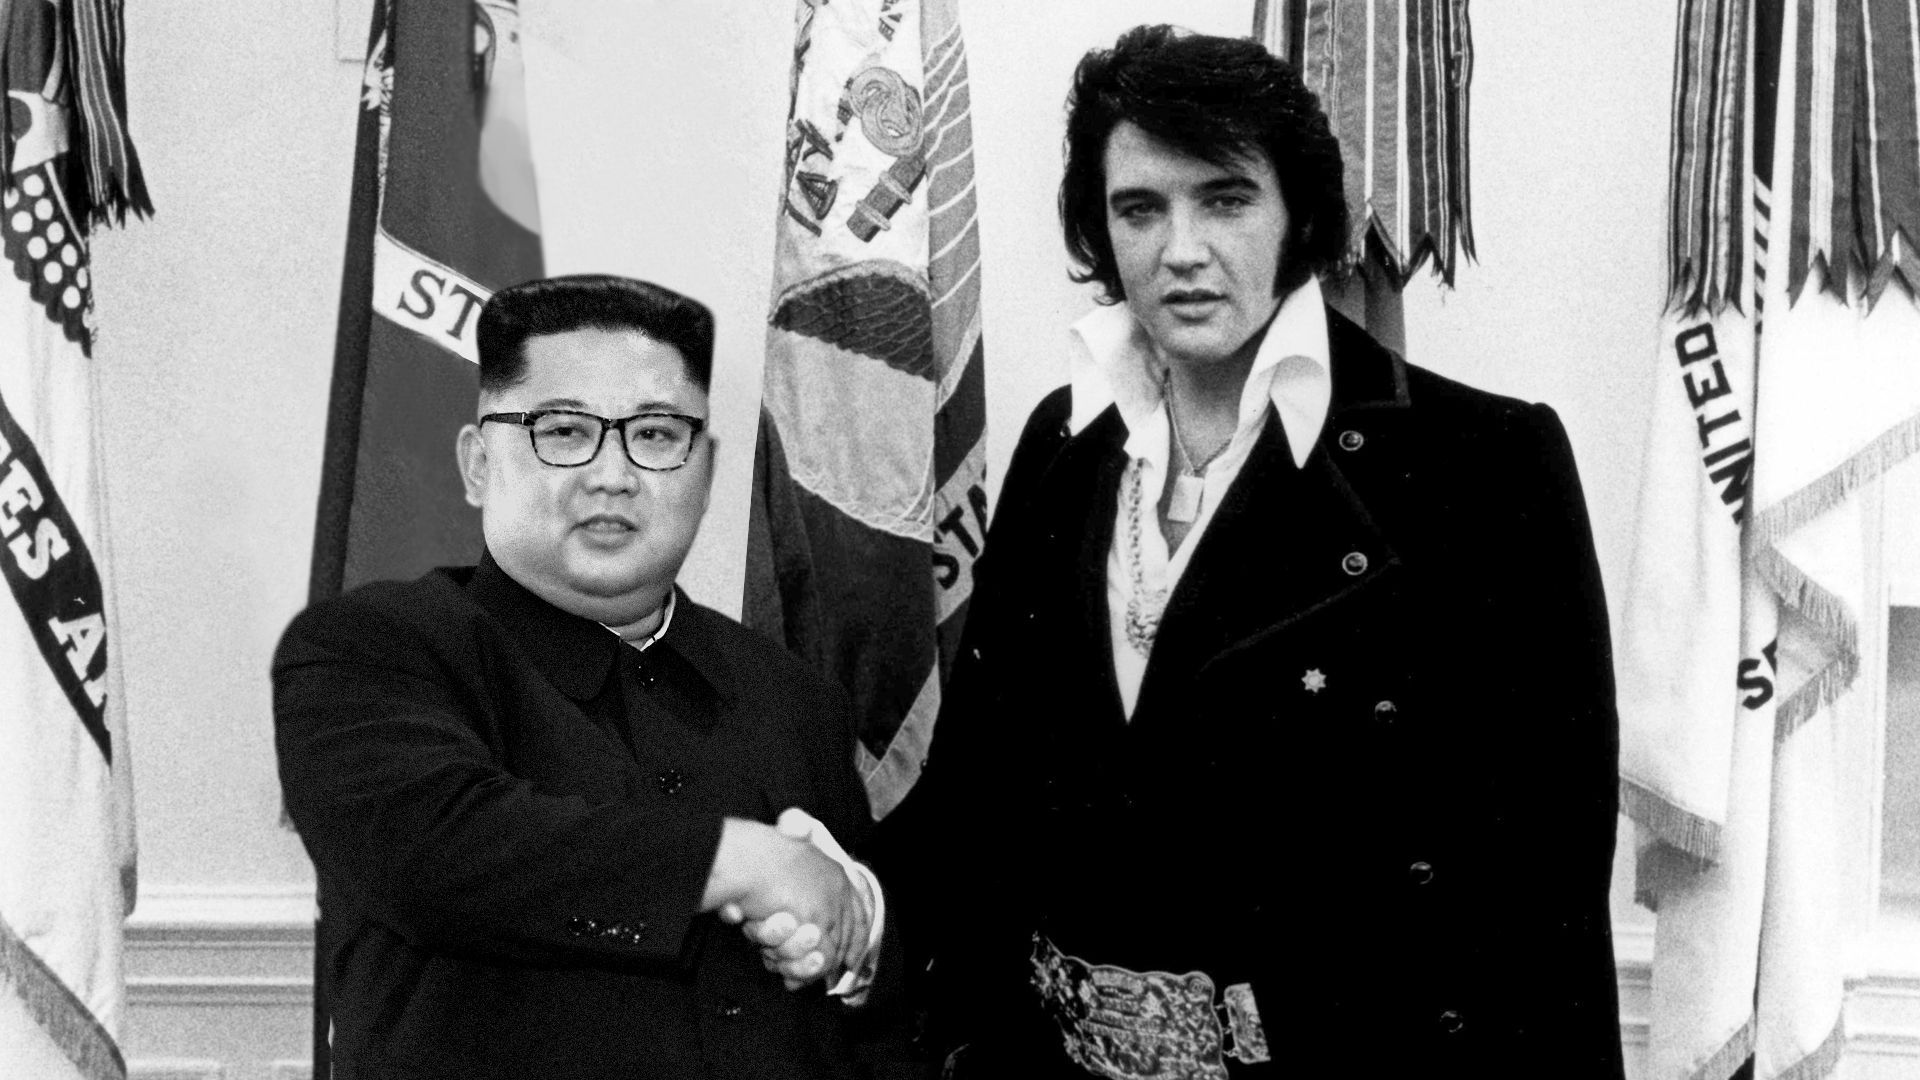 A faked photo showing Kim Jong-un and Elvis meeting. (They didn't)